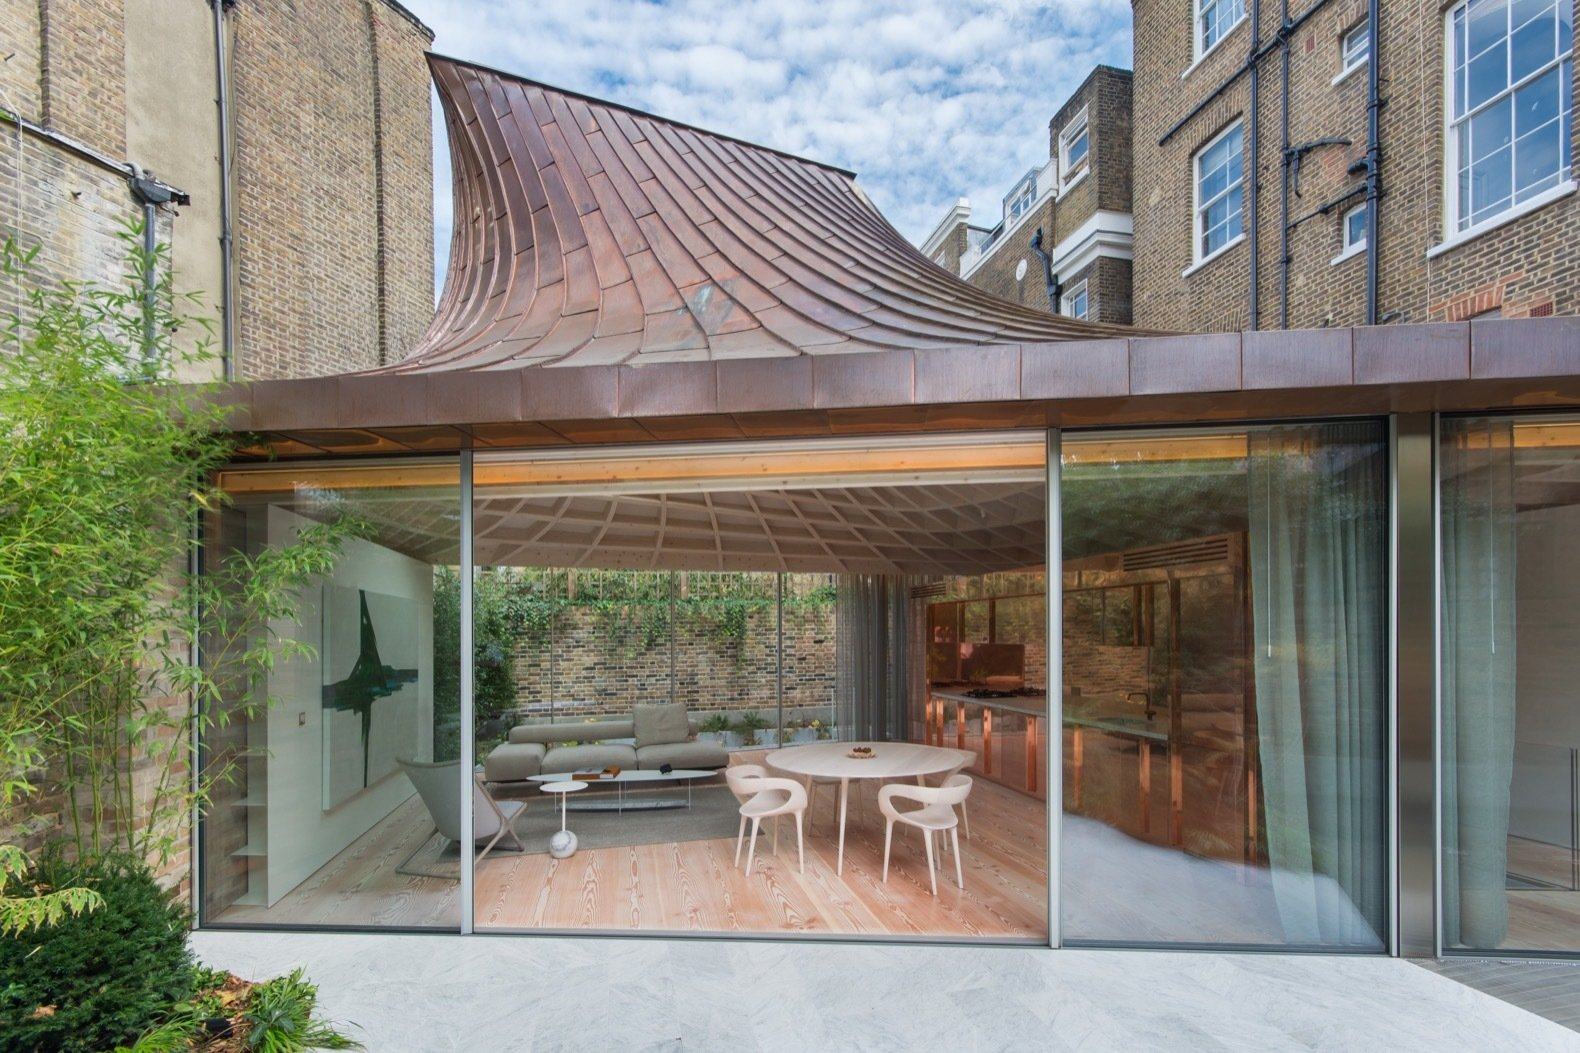 A Dramatic Copper Roof Funnels Light Into This Sculptural London Home Asking $7.6M